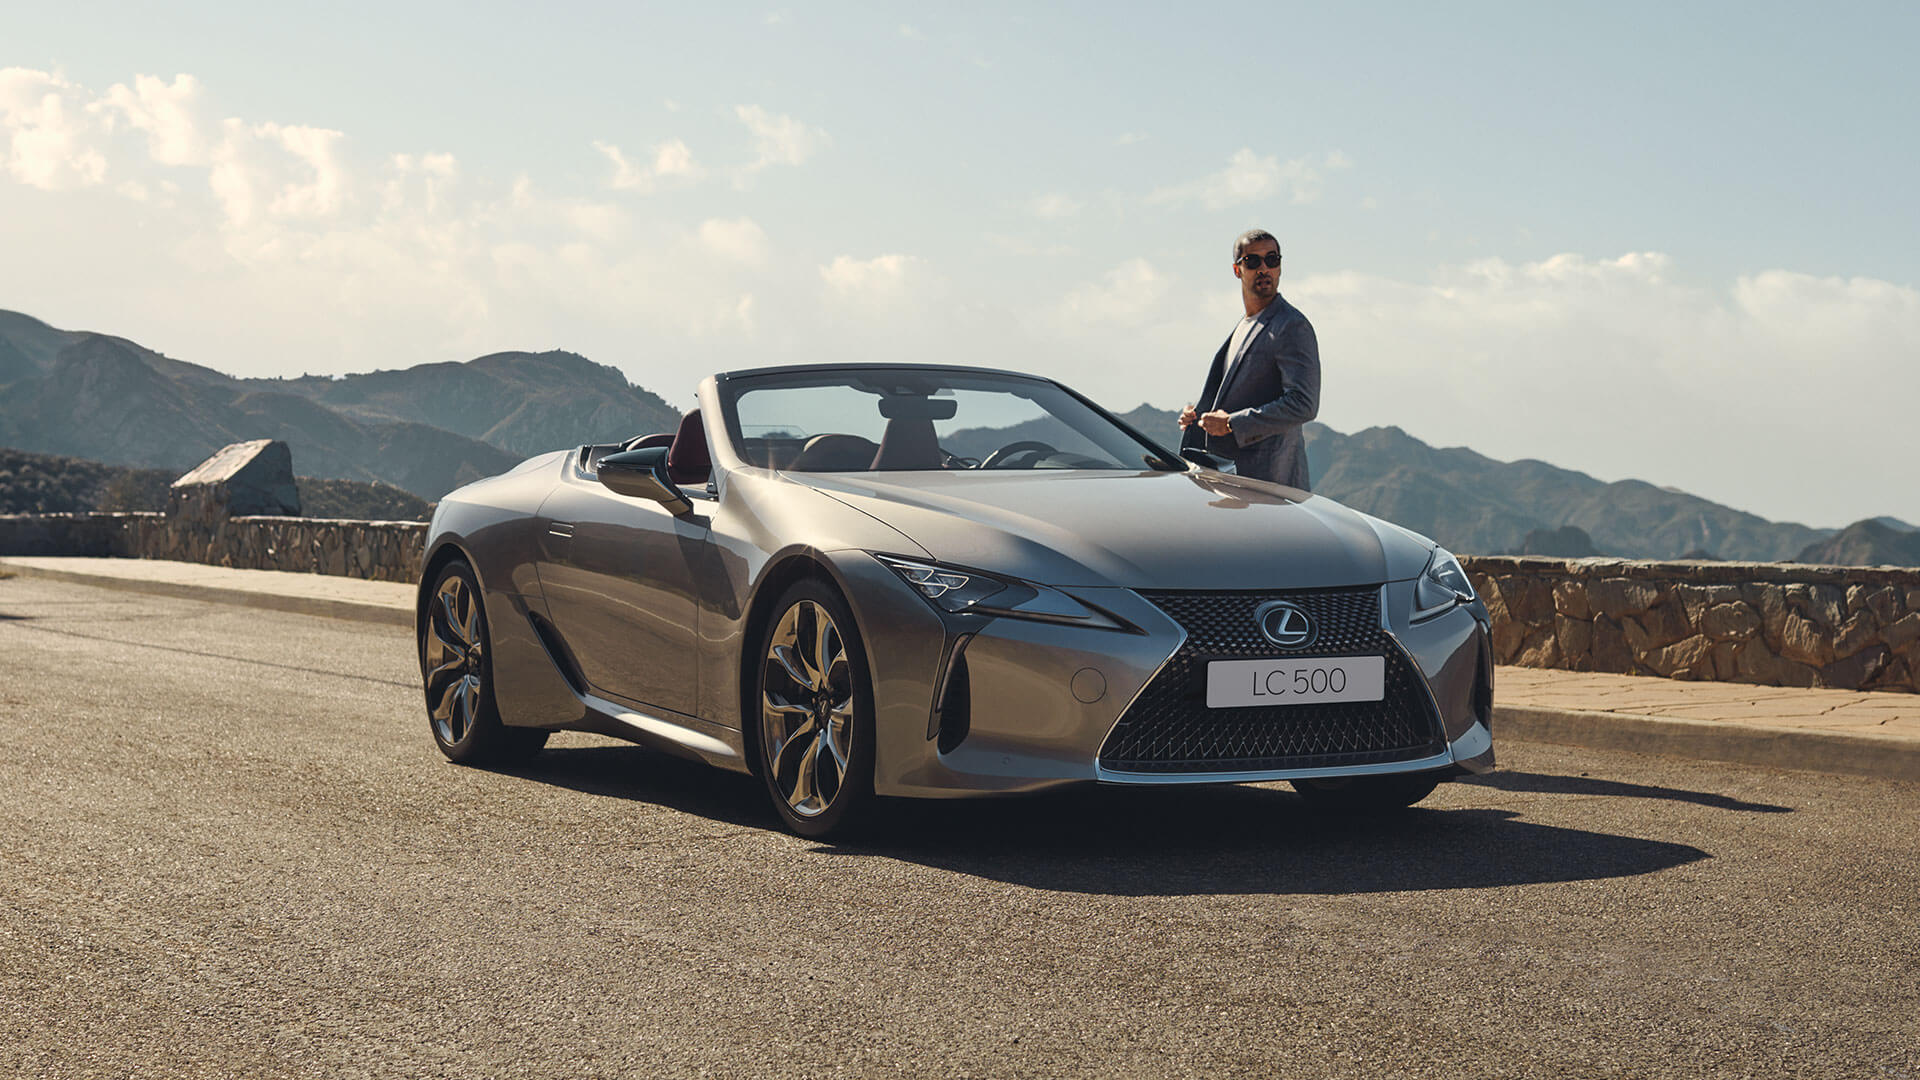 2020 lc convertible gallery 06